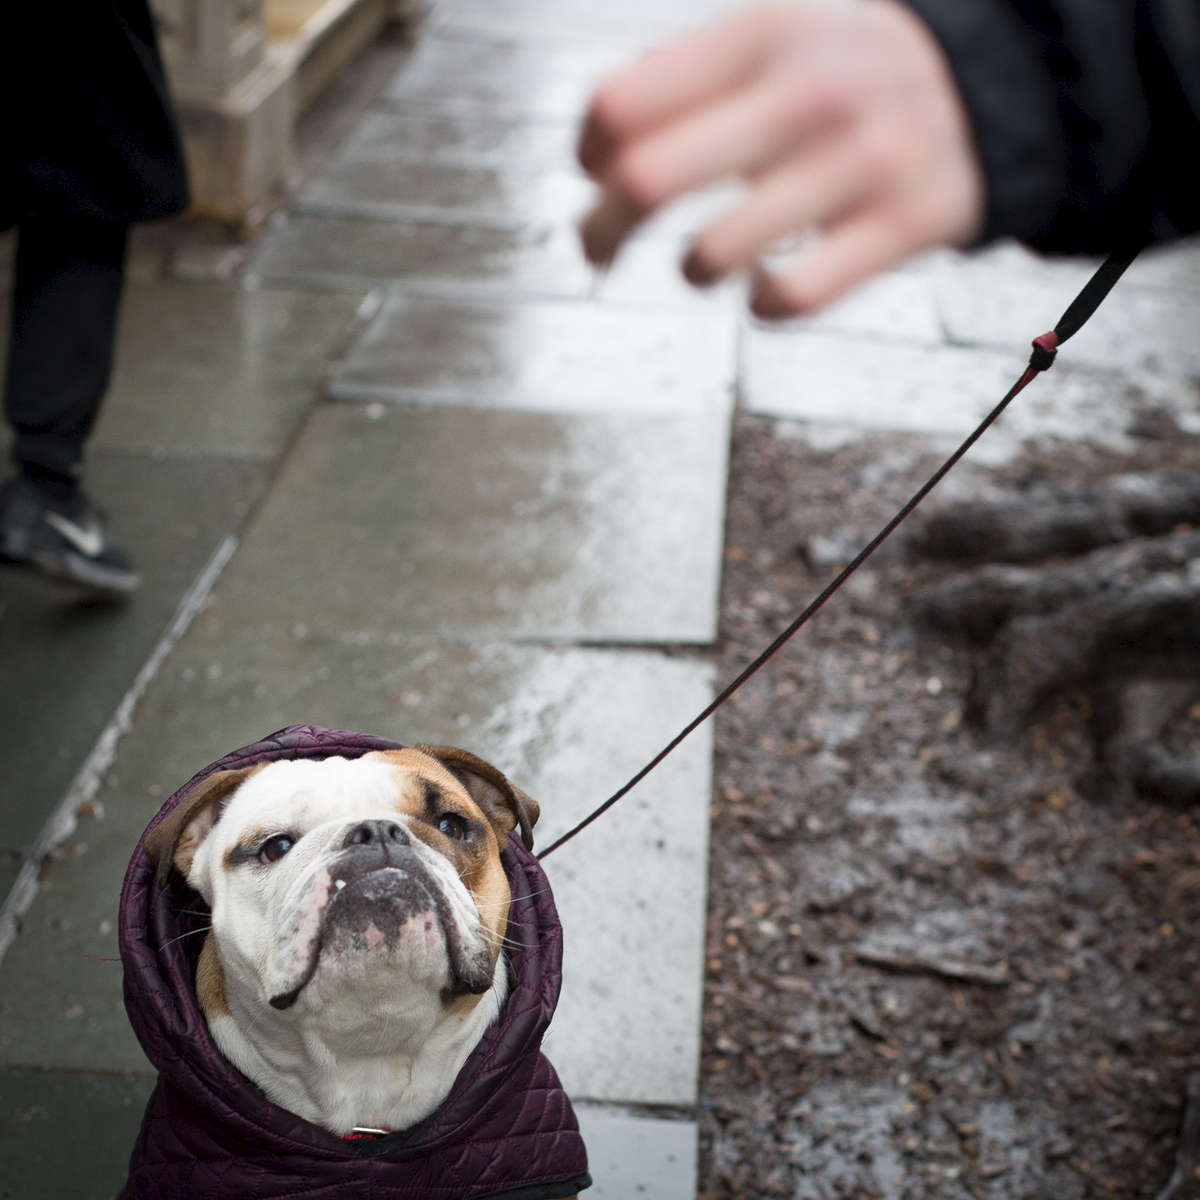 Layla bulldog, sits as her dog walker tries to get her to take a walk offering her a treat on 4th St. near Lafayette.